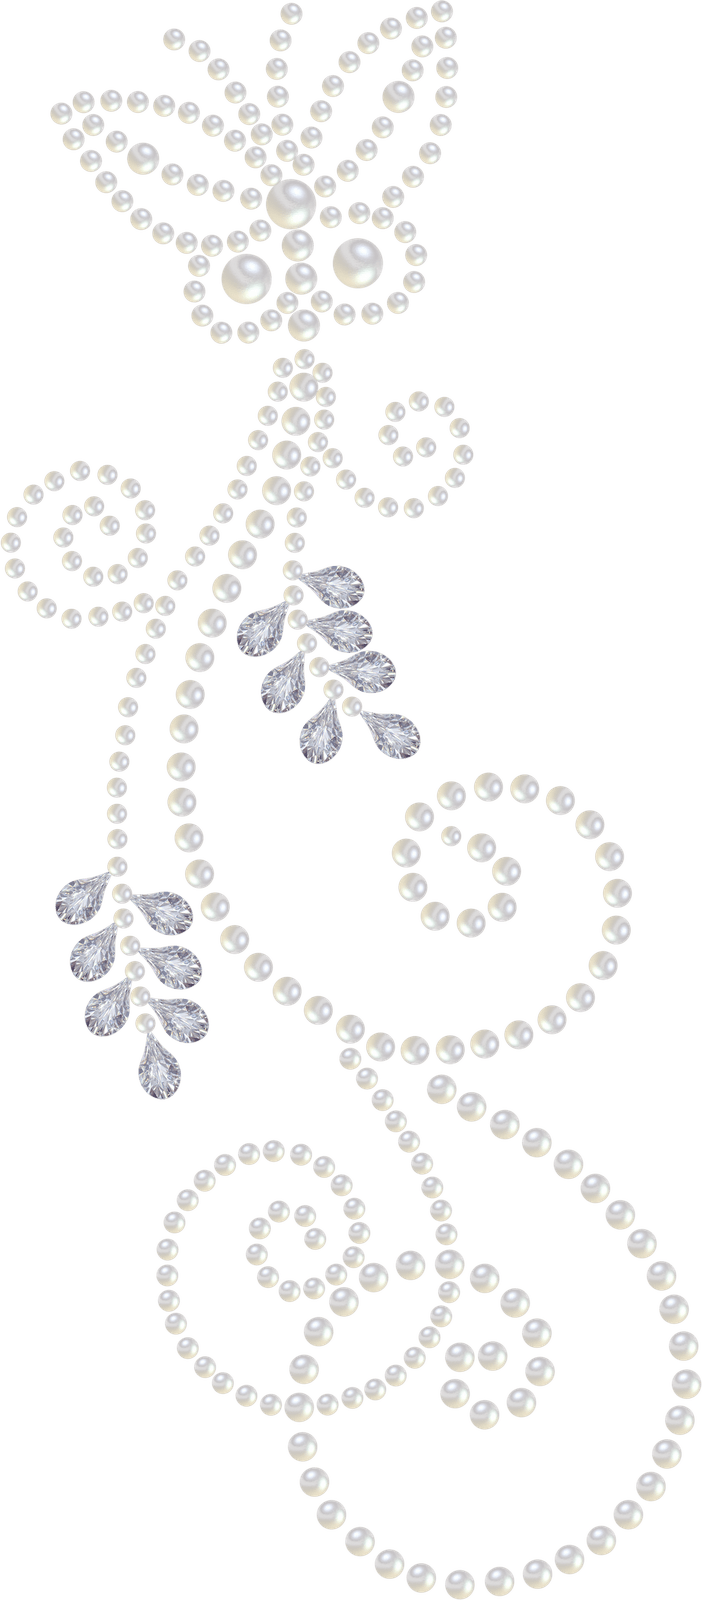 Cute Bakery Wallpaper Ice Pearls Clipart Clipground